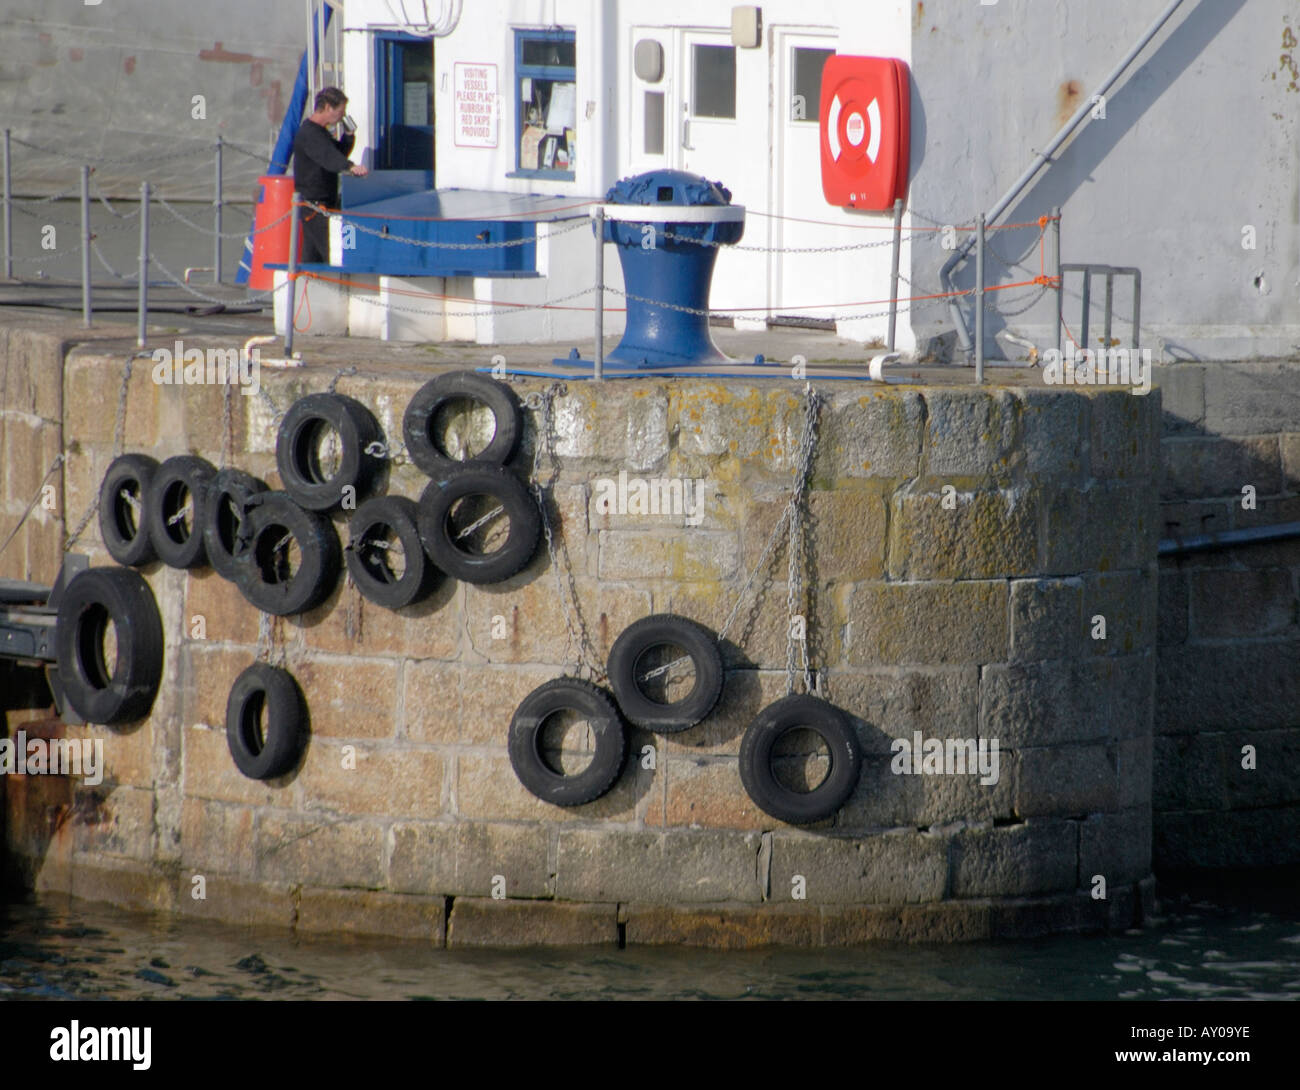 Old car tyres used as fenders to protect ships from the for Old tyre uses